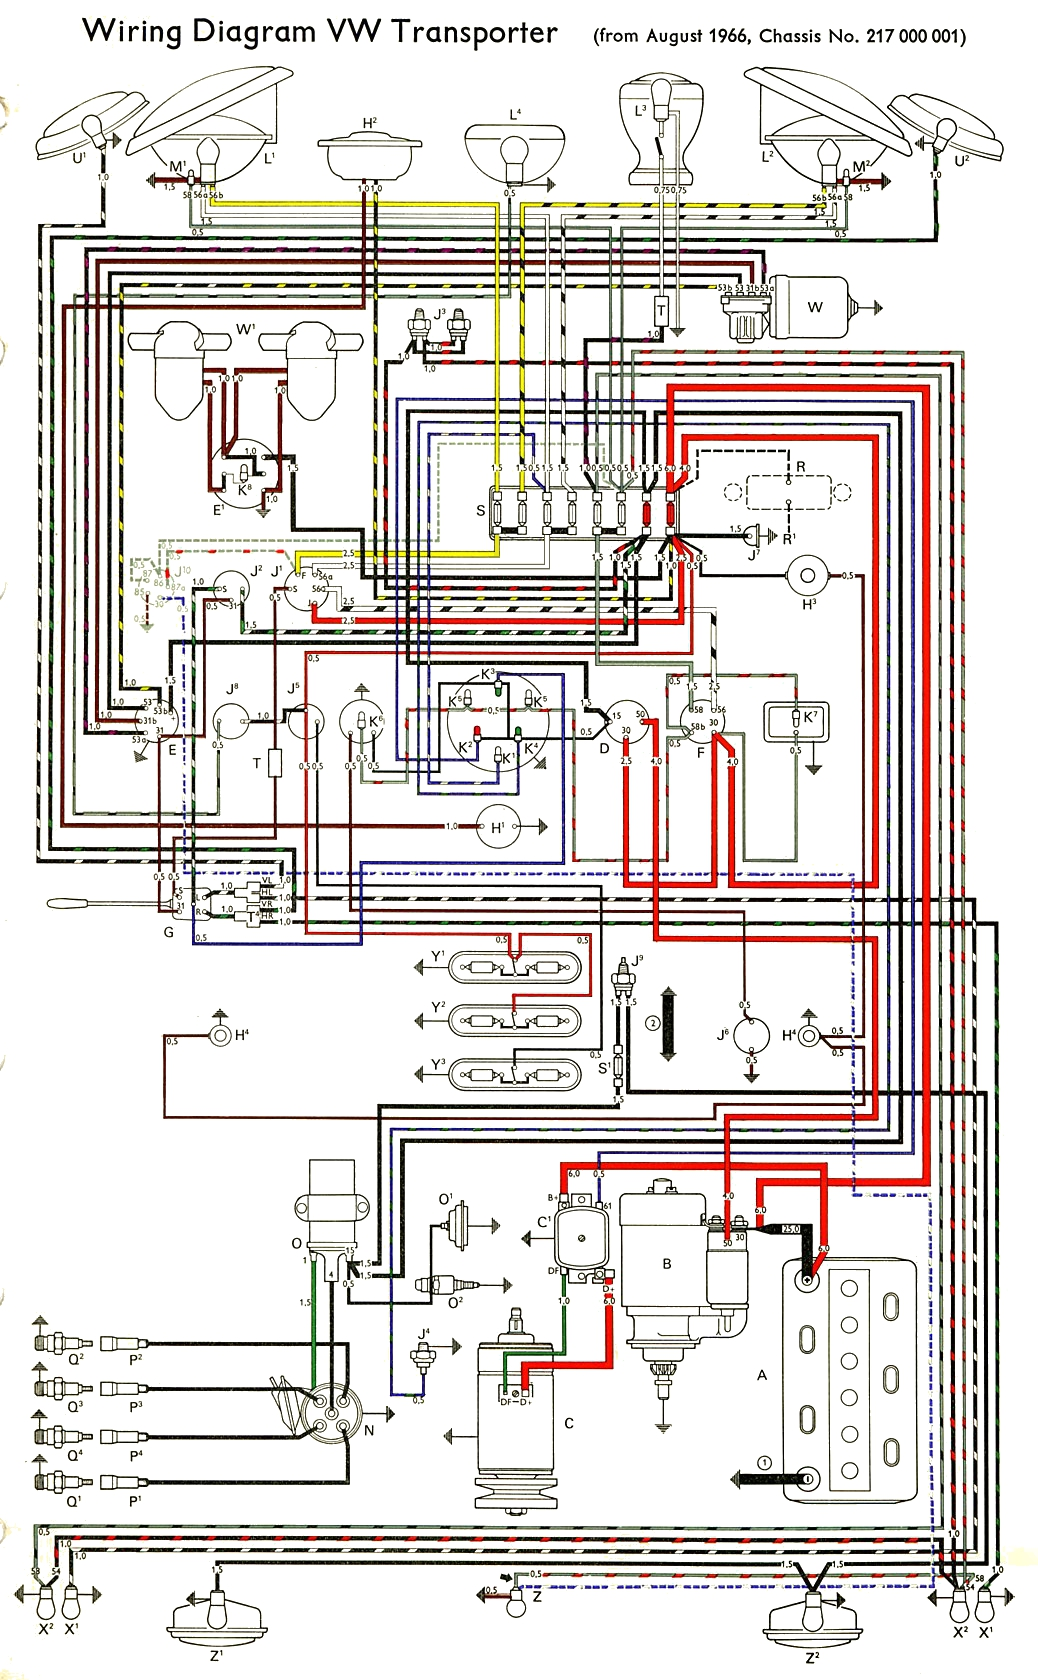 Air Cooled Vw Wire Diagram Starting Know About Wiring Ferguson T20 Bus Harness Just Data Rh Ag Skiphire Co Uk Engine